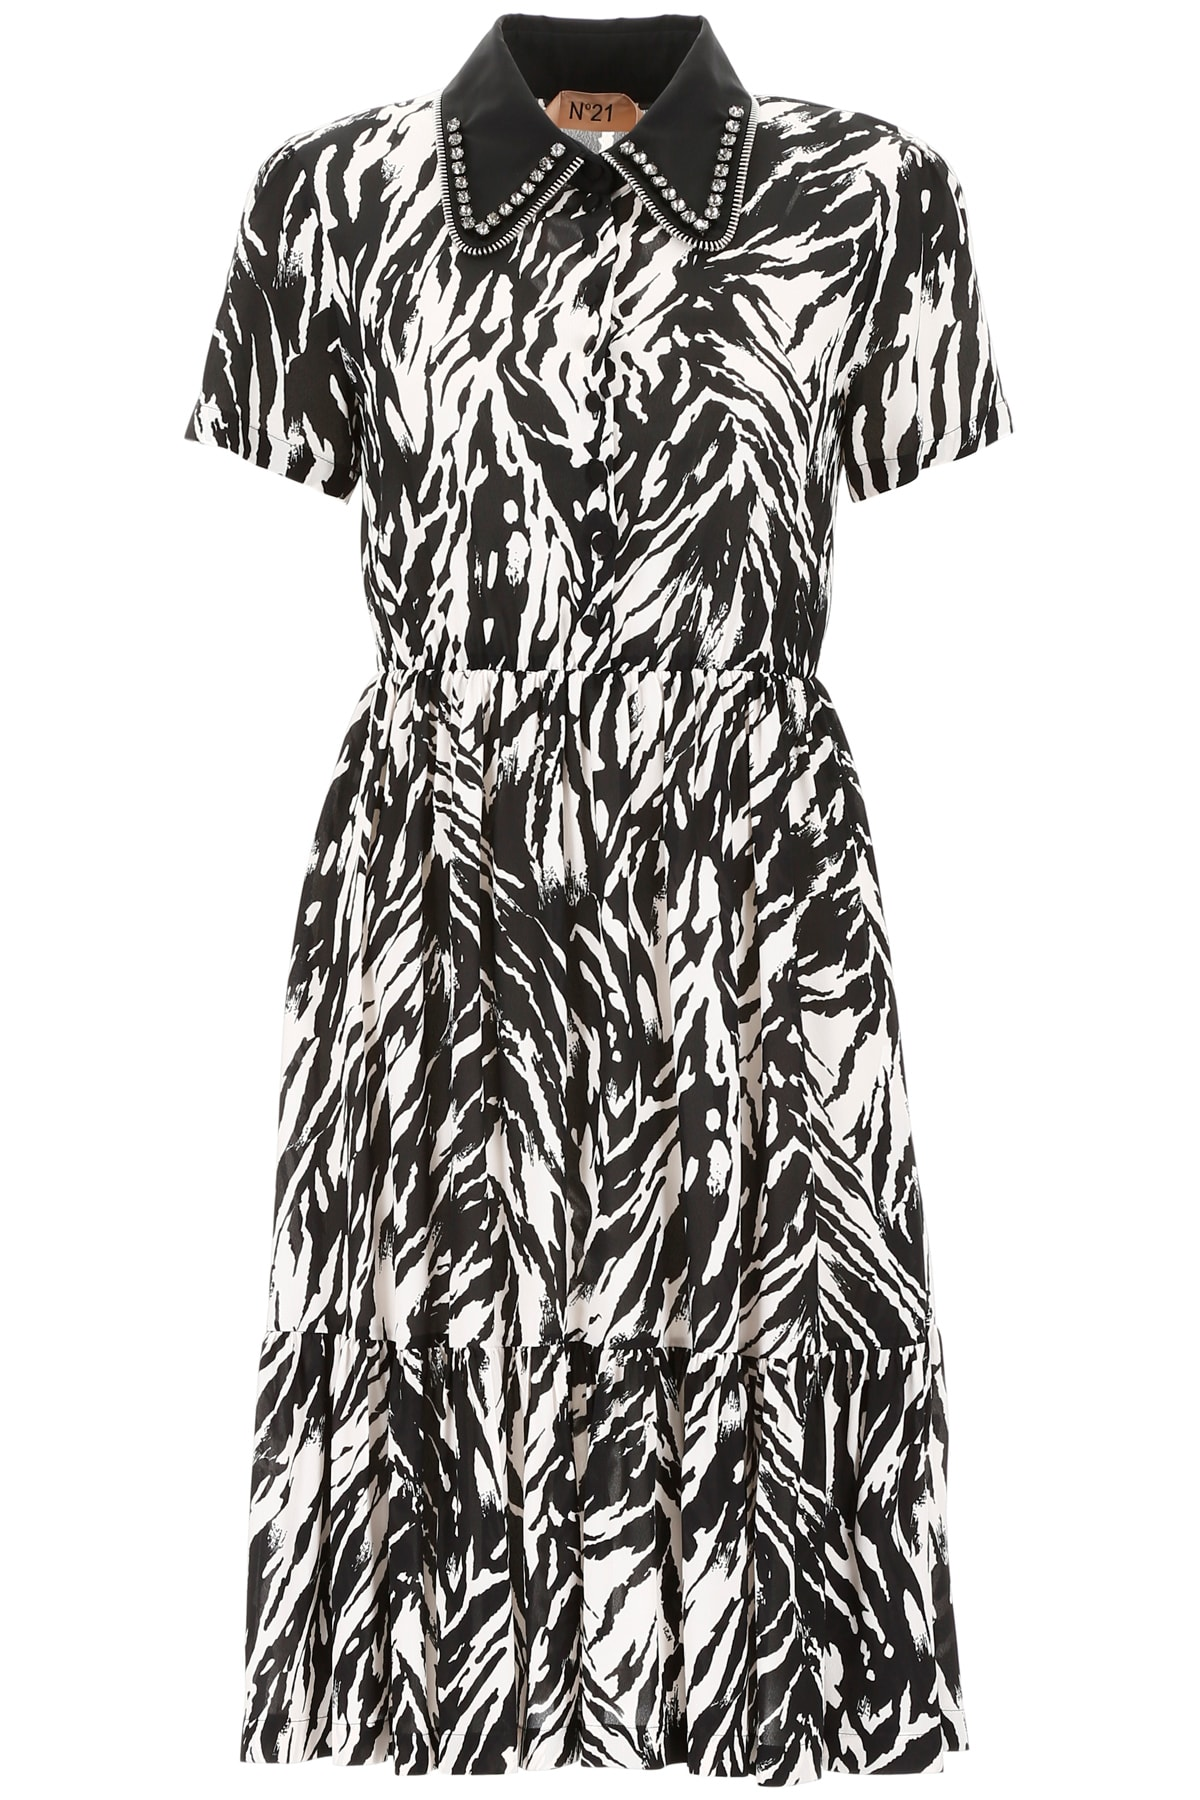 N.21 Zebra Dress With Crystals